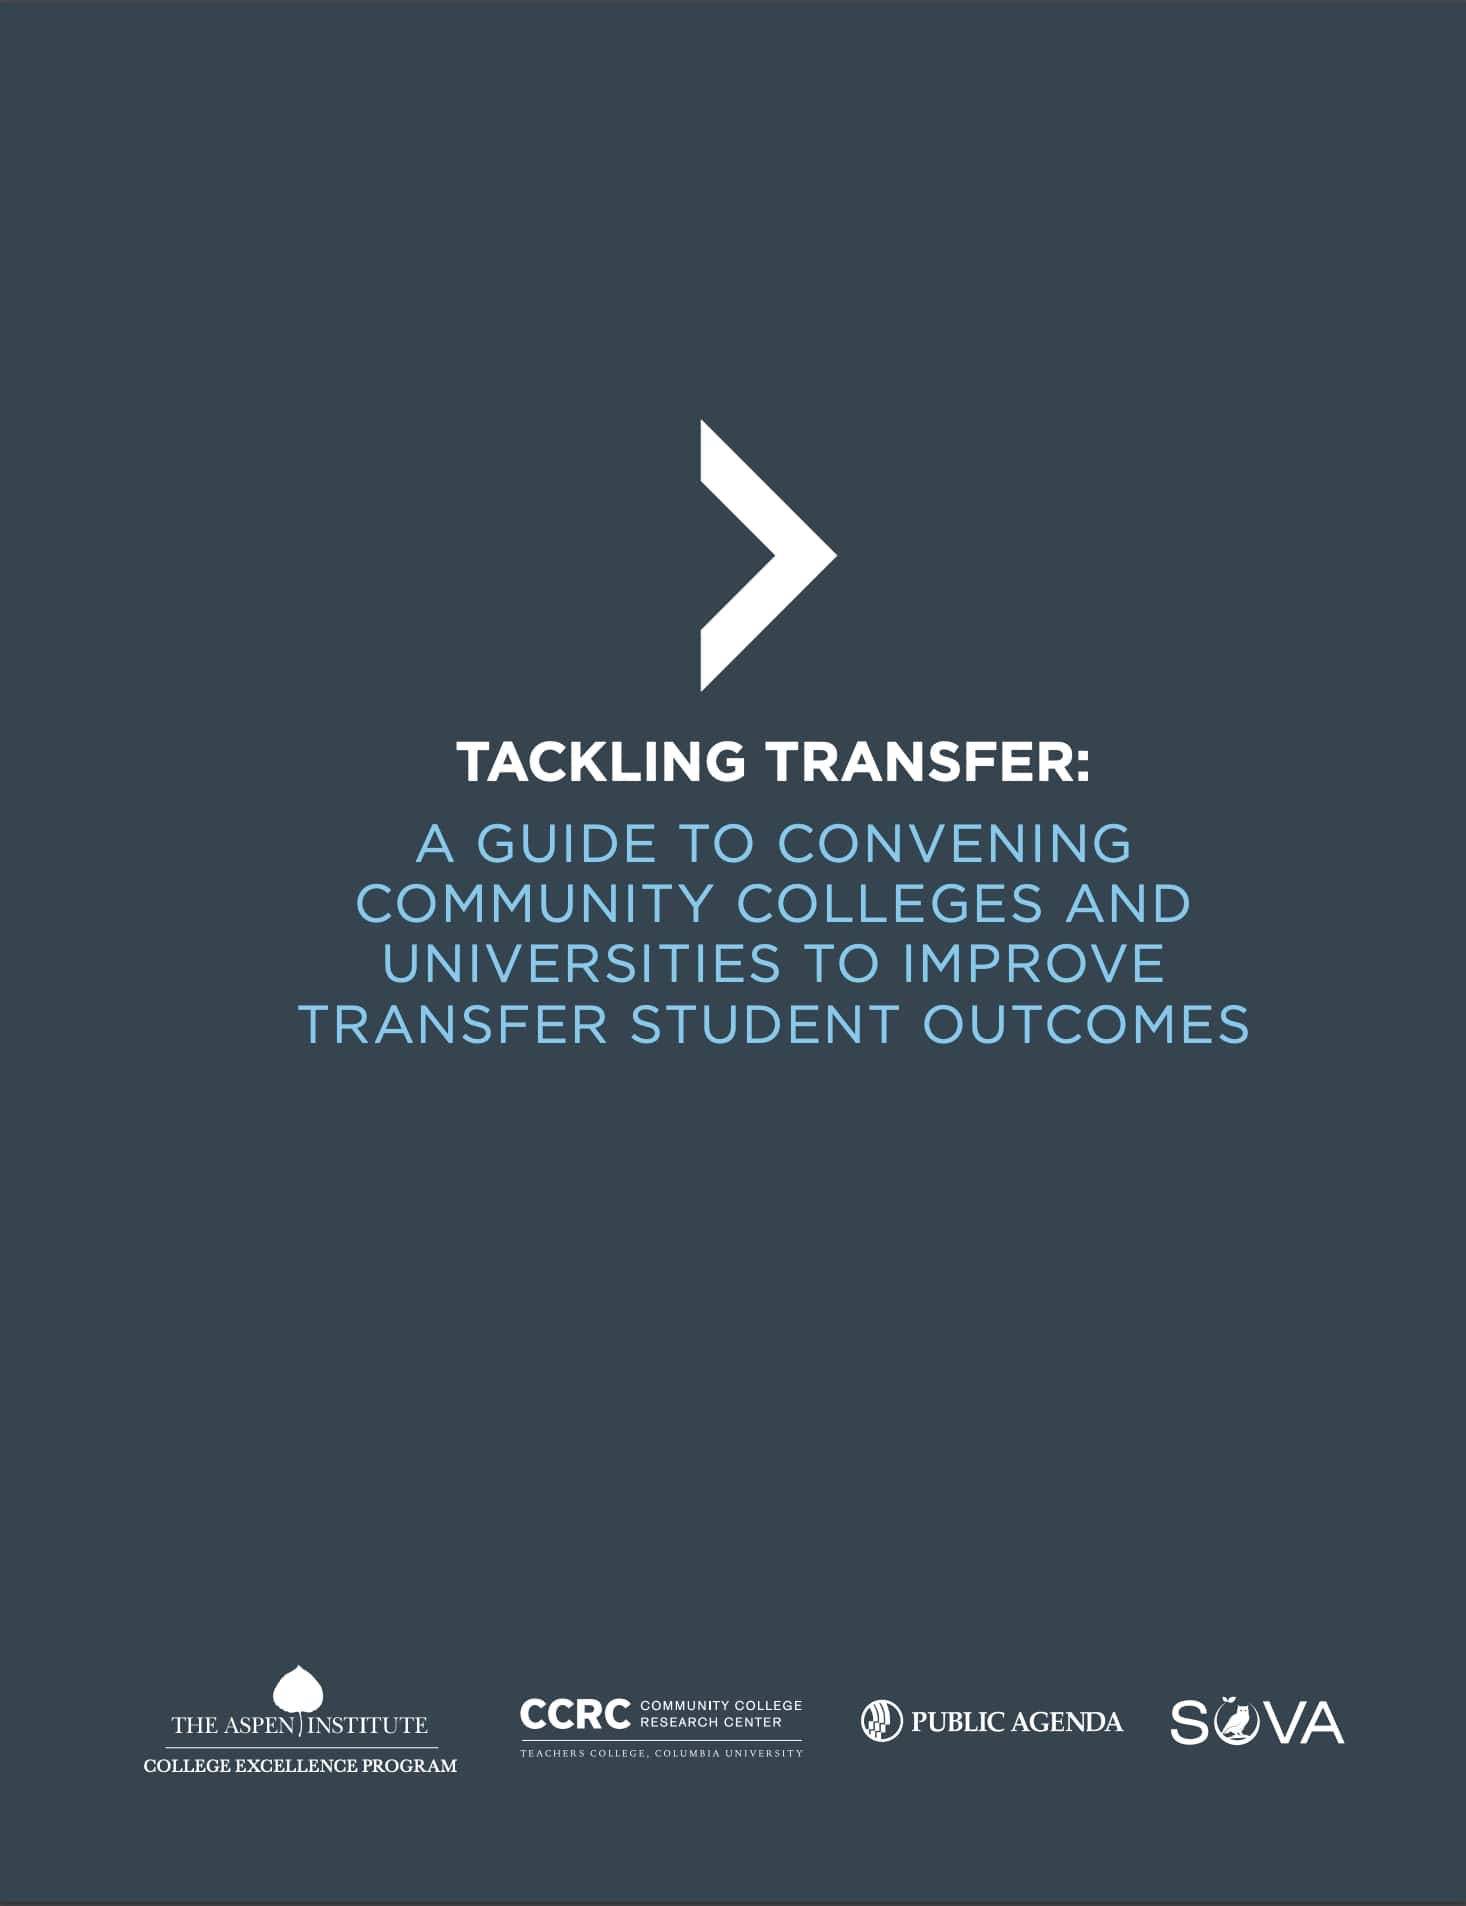 Tackling Transfer Guide Cover And Featured Image